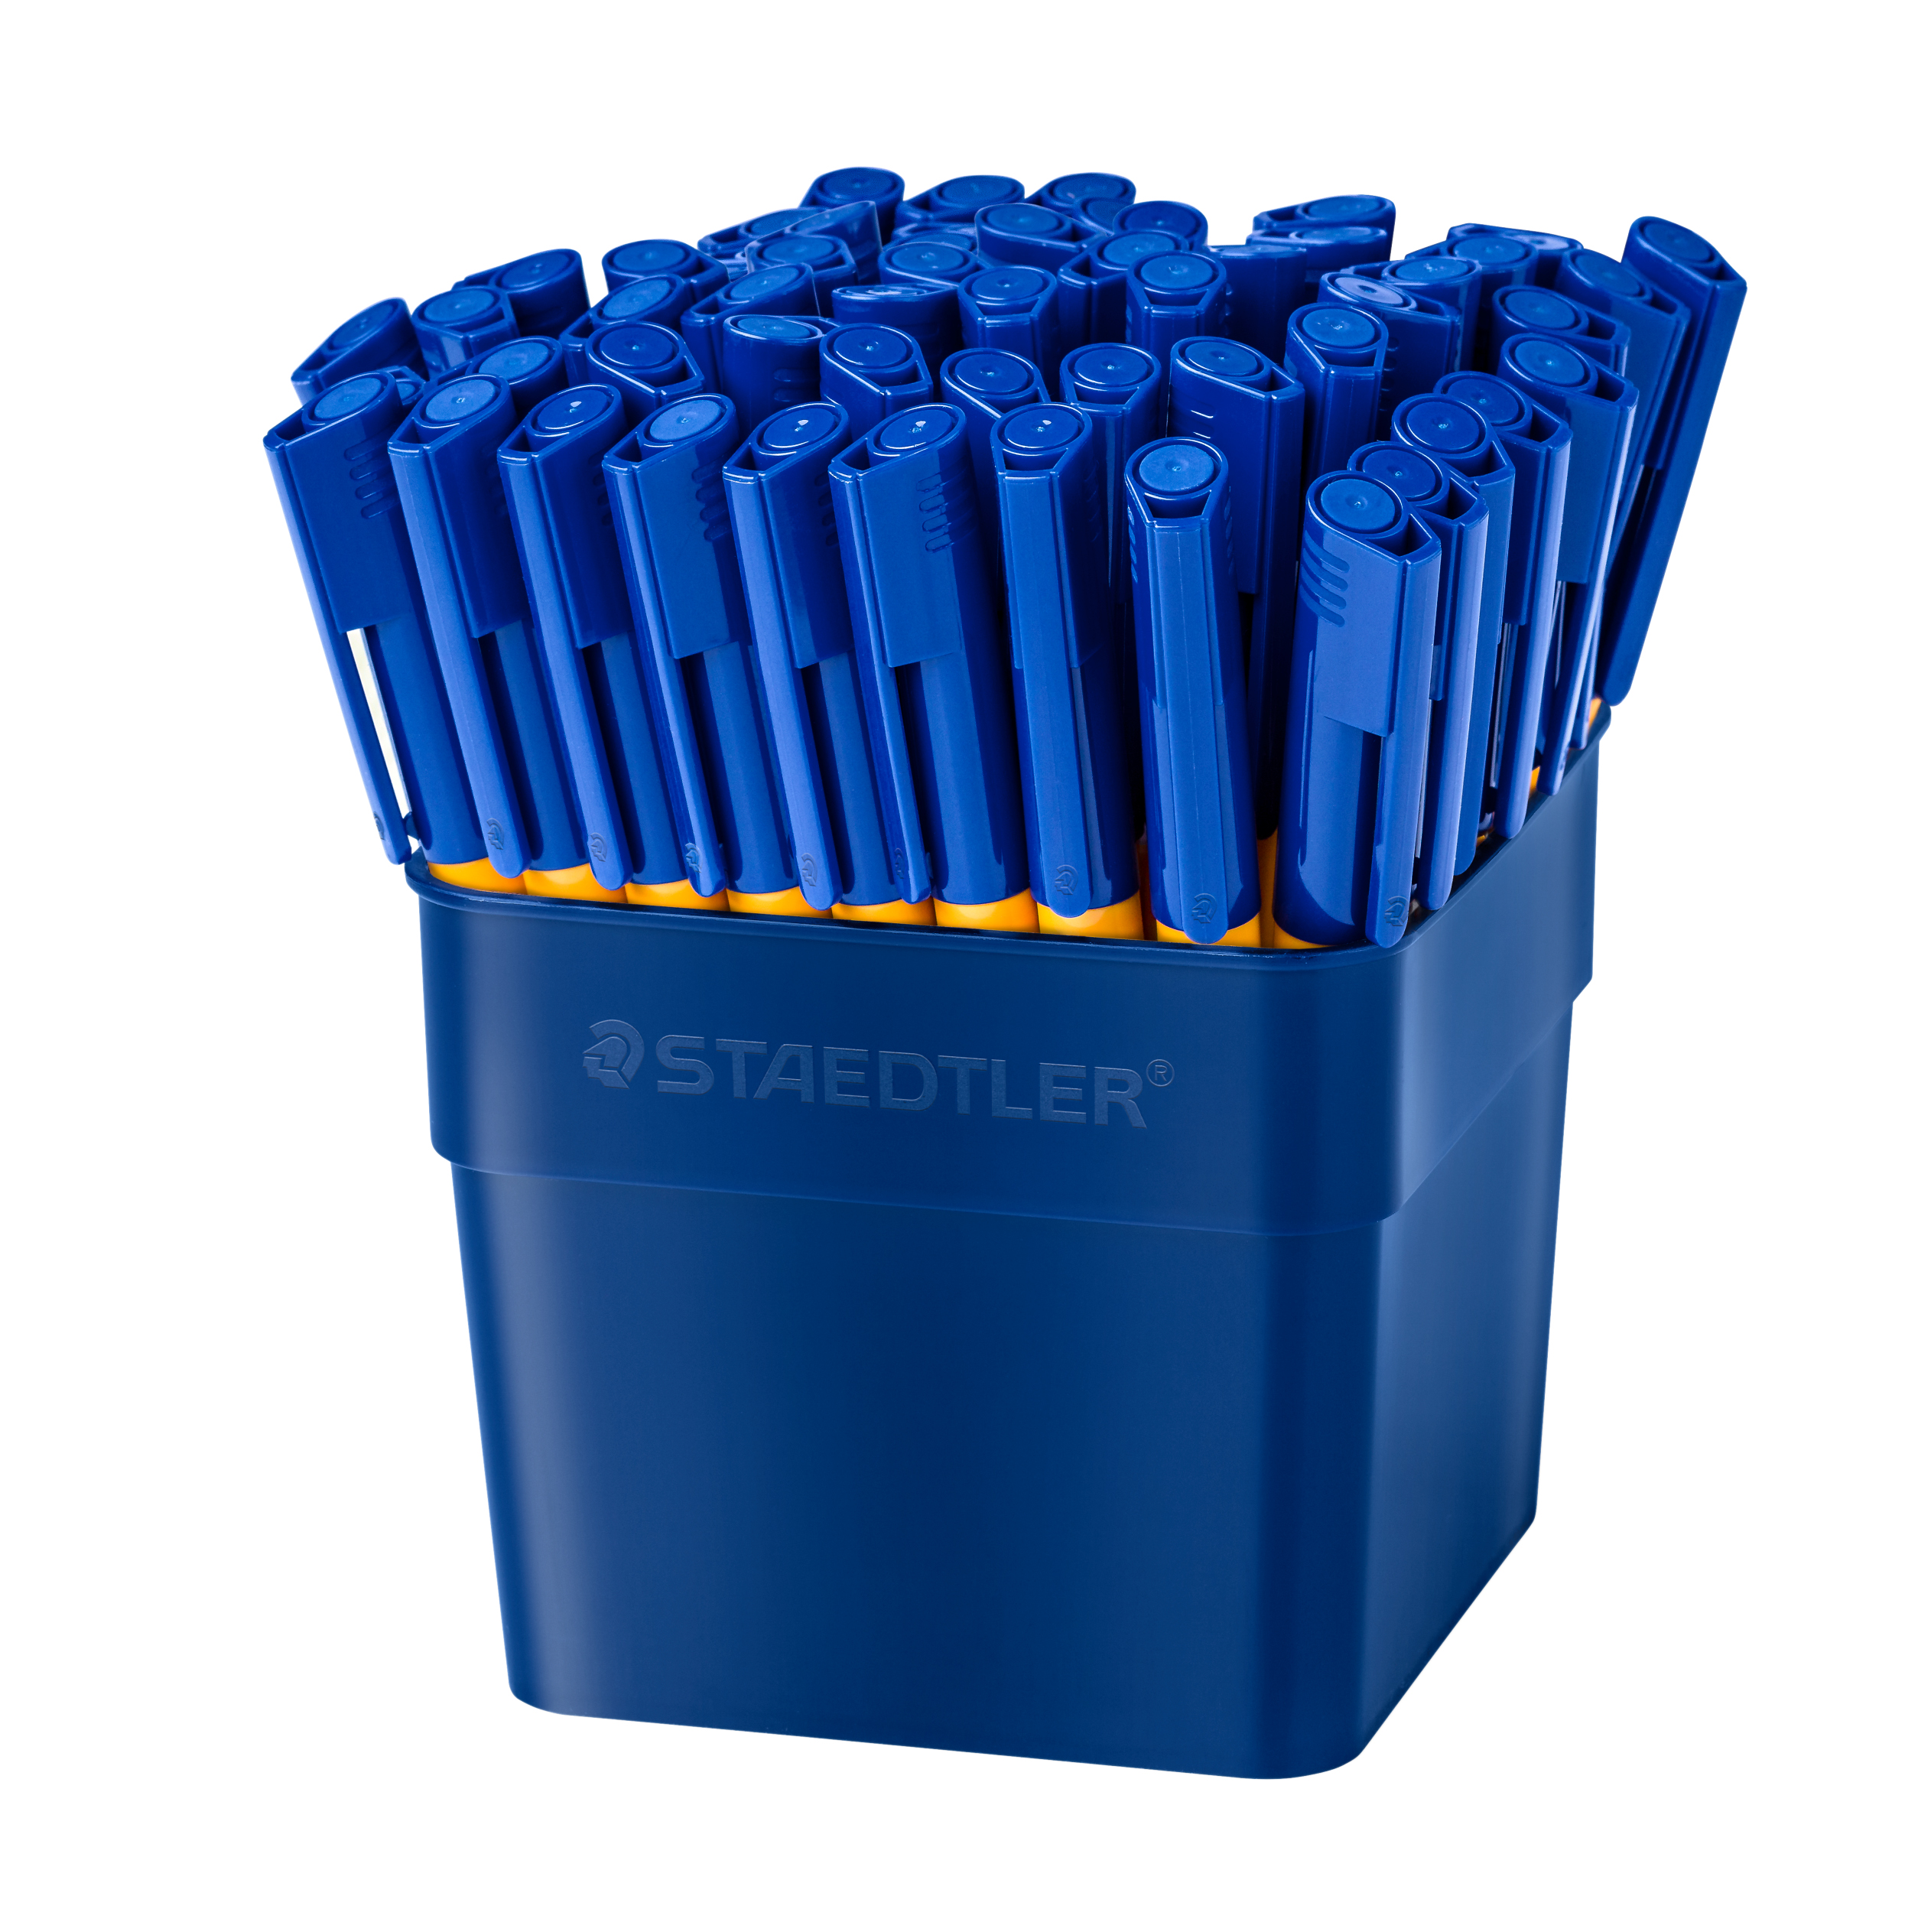 Felt pen Staedtler Handwriting Pens Blue Ref 309-3 T50 Pack 50